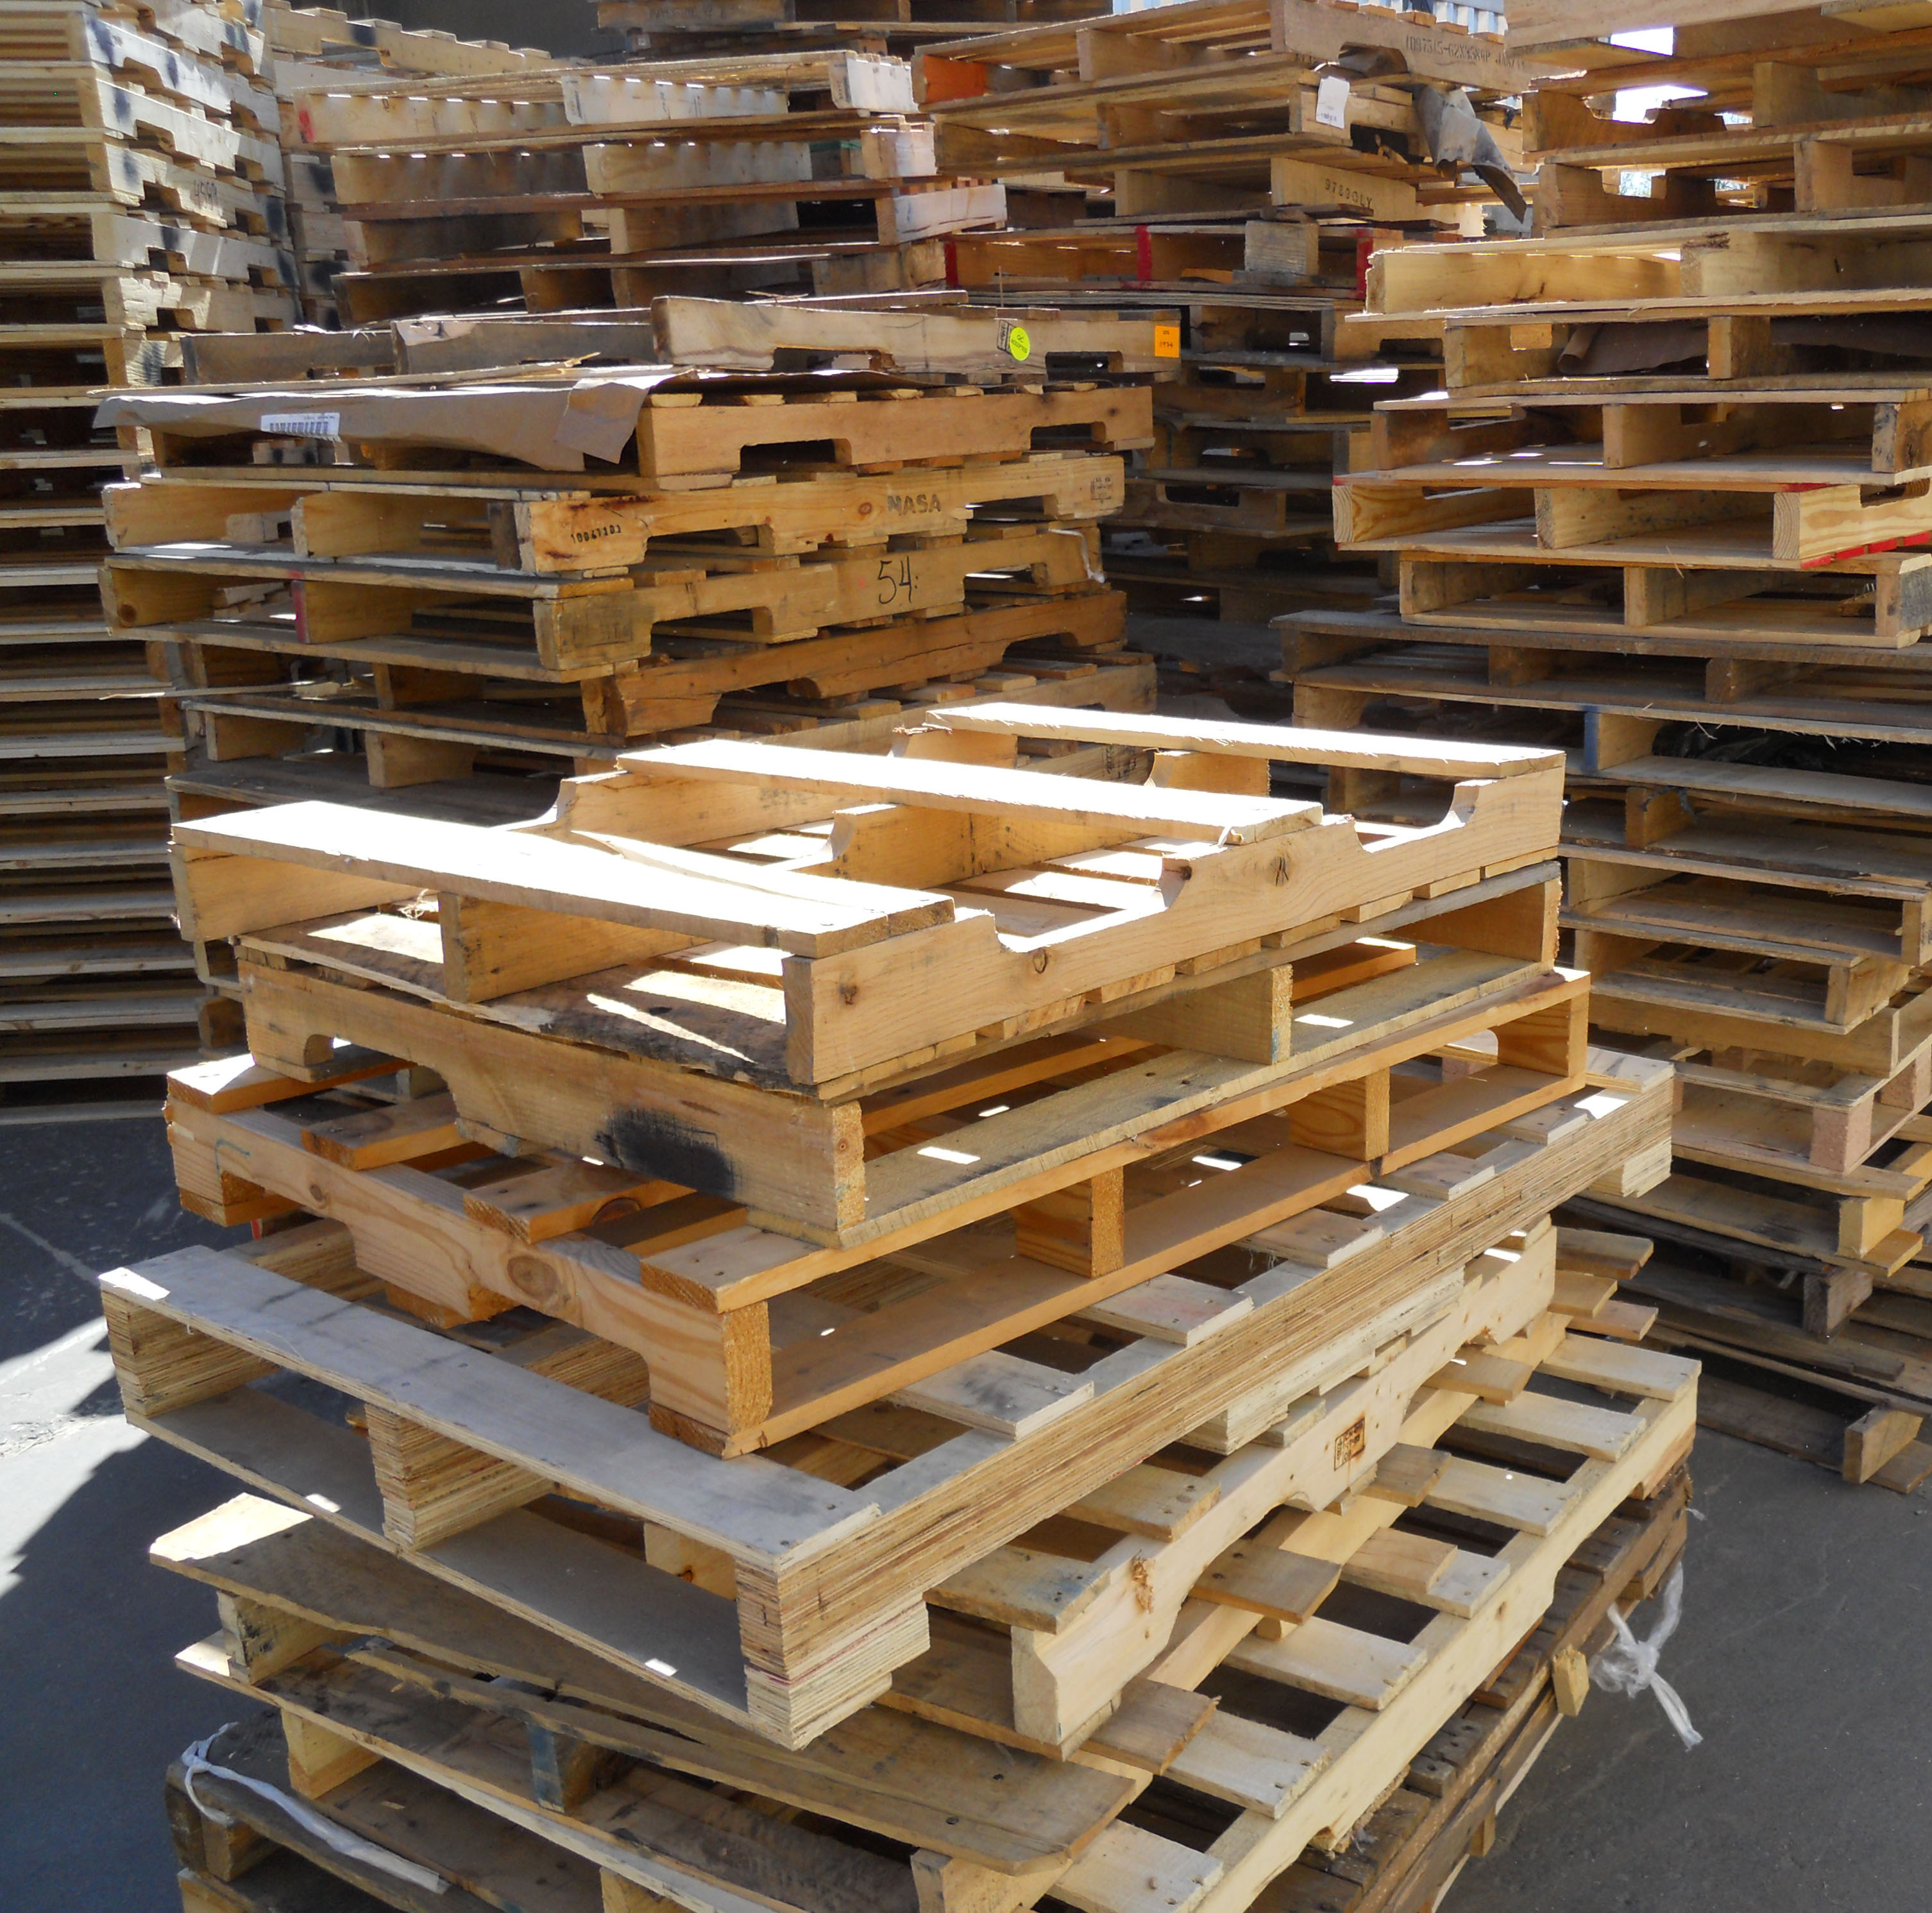 Wooden Pallet - Tertiary Packaging